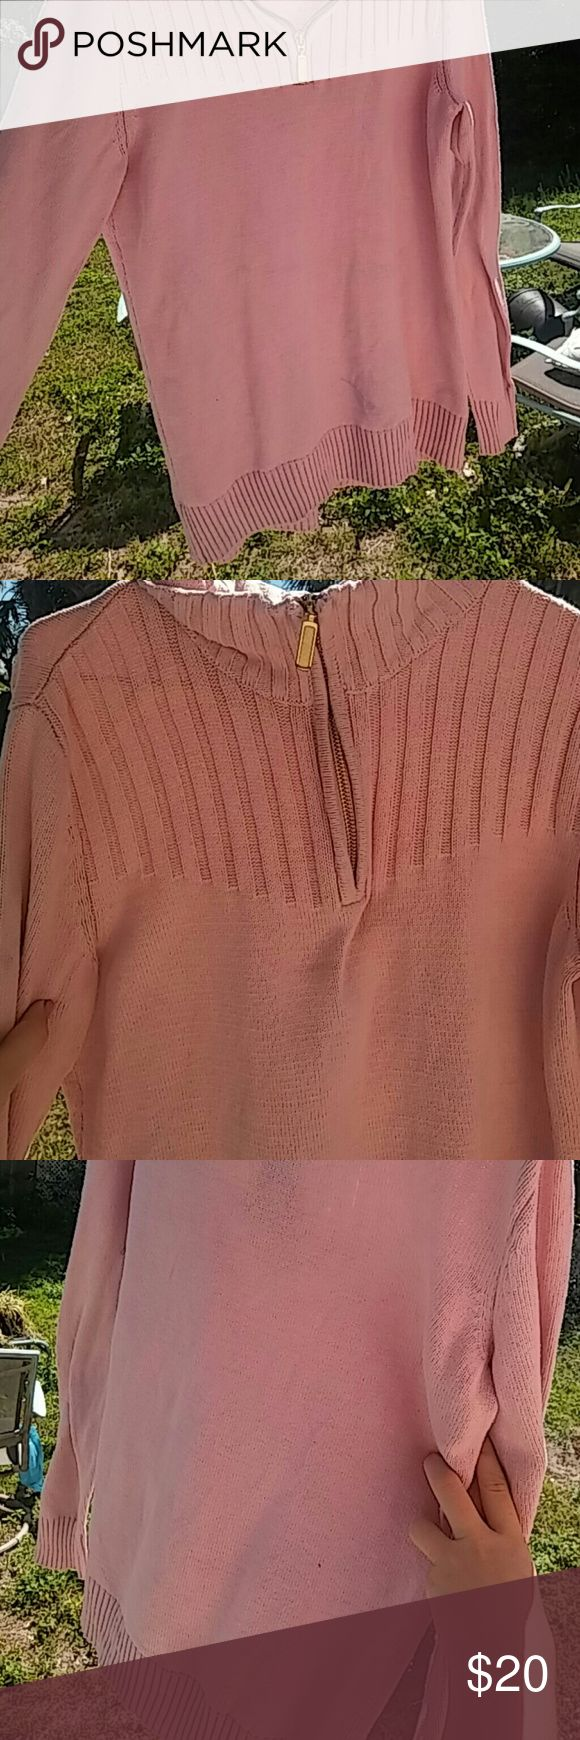 Karen Scott zip-up women's sweater Pastel pink gold zip up long sleeve women's sweater. There is a small discoloring stain on the bottom left kaern Scott Jackets & Coats Pea Coats